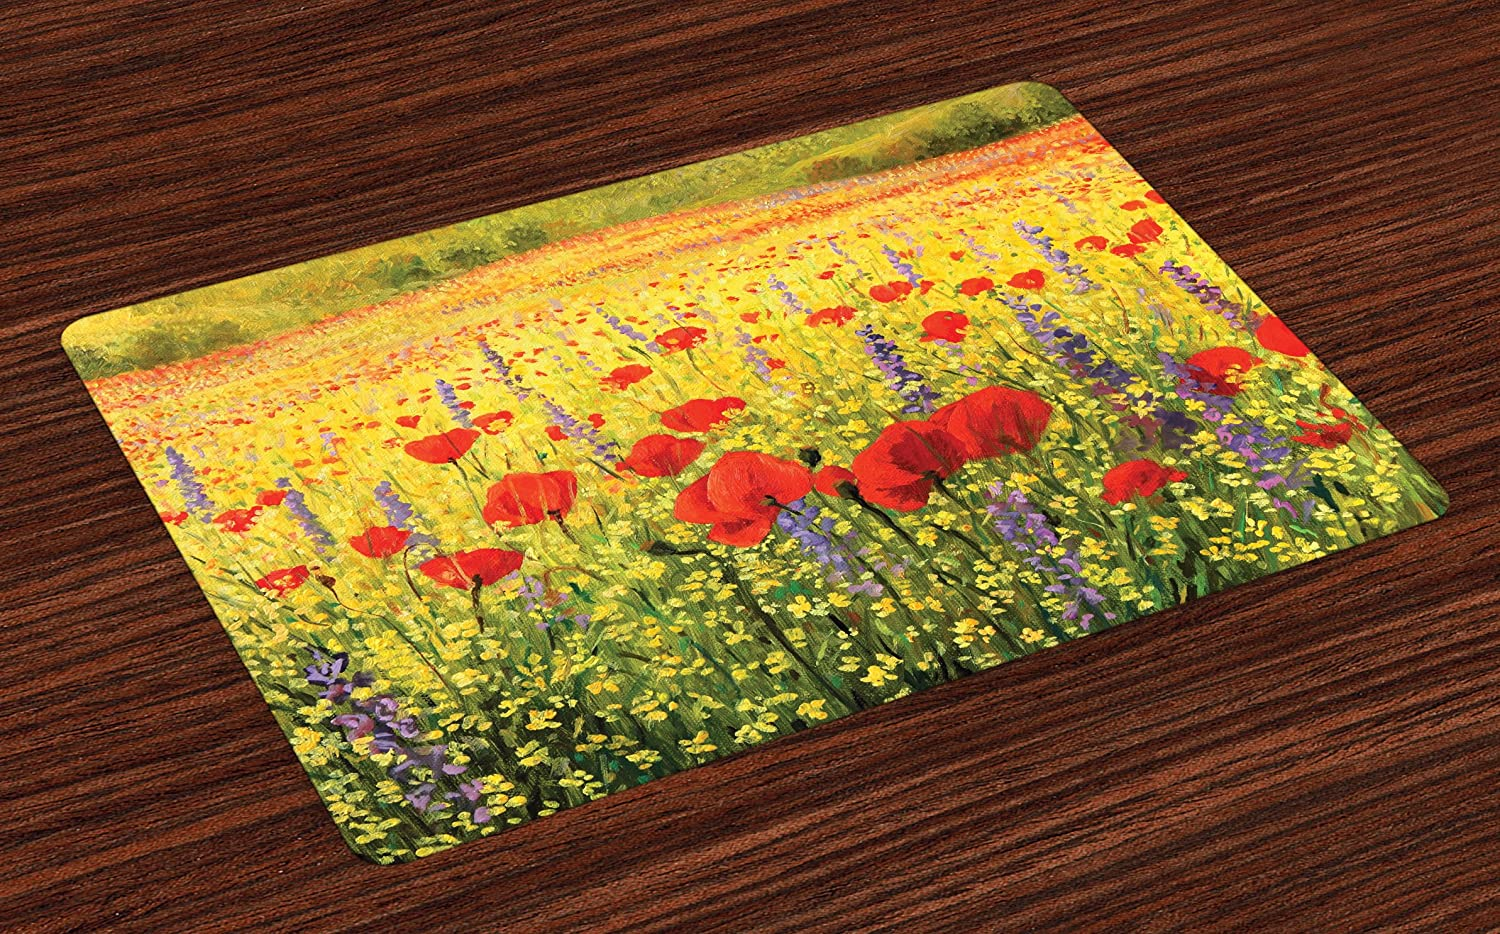 Ambesonne Flower Place Mats Set of 4, Colorful Field with Poppies Yellow Flowers Lavendar Farmland Hills Scenery, Washable Fabric Placemats for Dining Table, Standard Size, Yellow Red